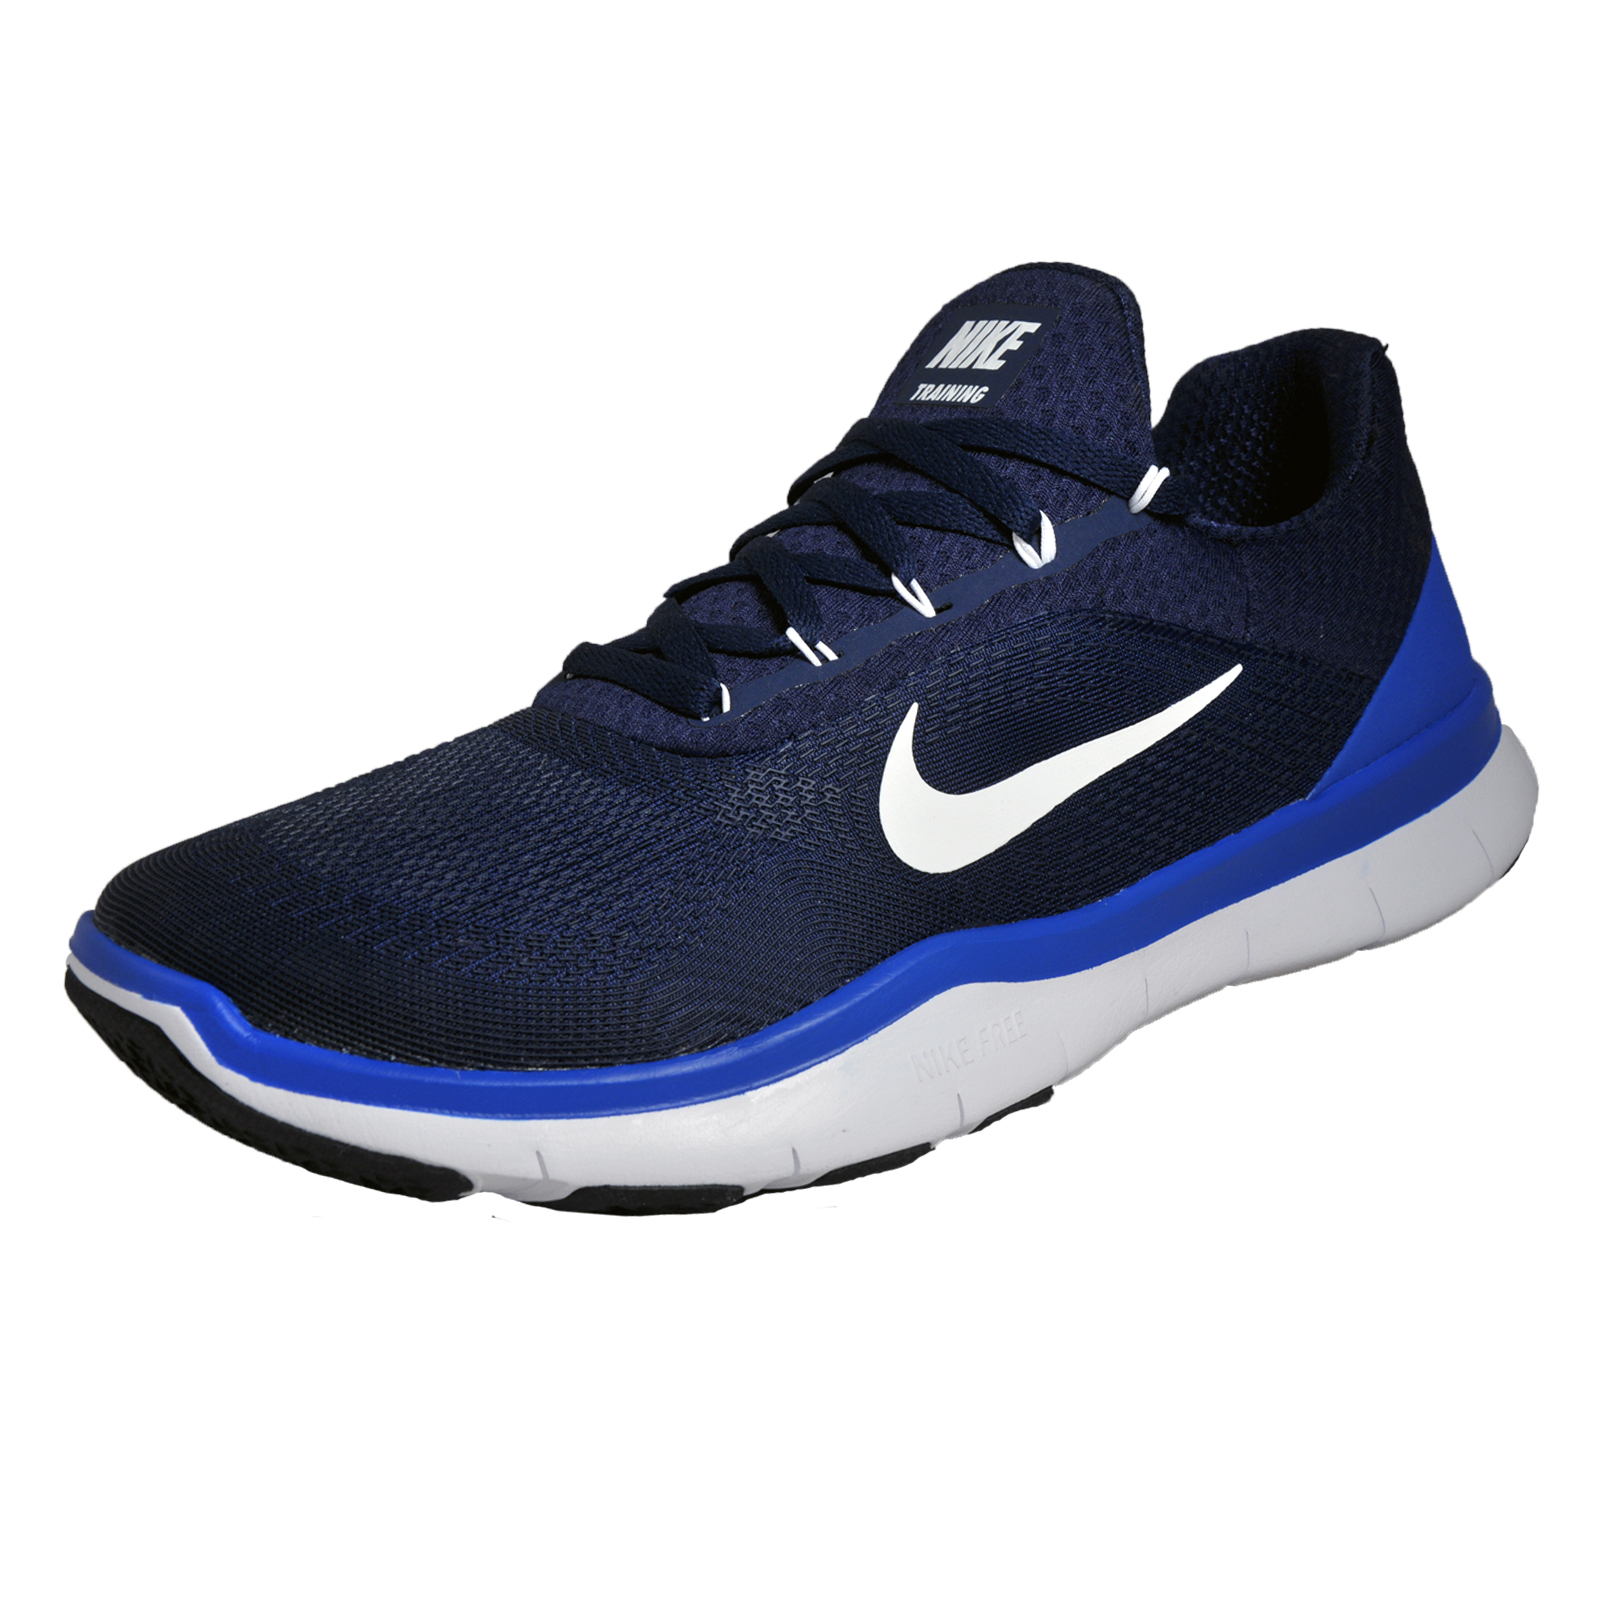 fba6de51a8b5fe Details about Nike Free Trainer V7 Mens Running Shoes Fitness Gym Trainers  Navy